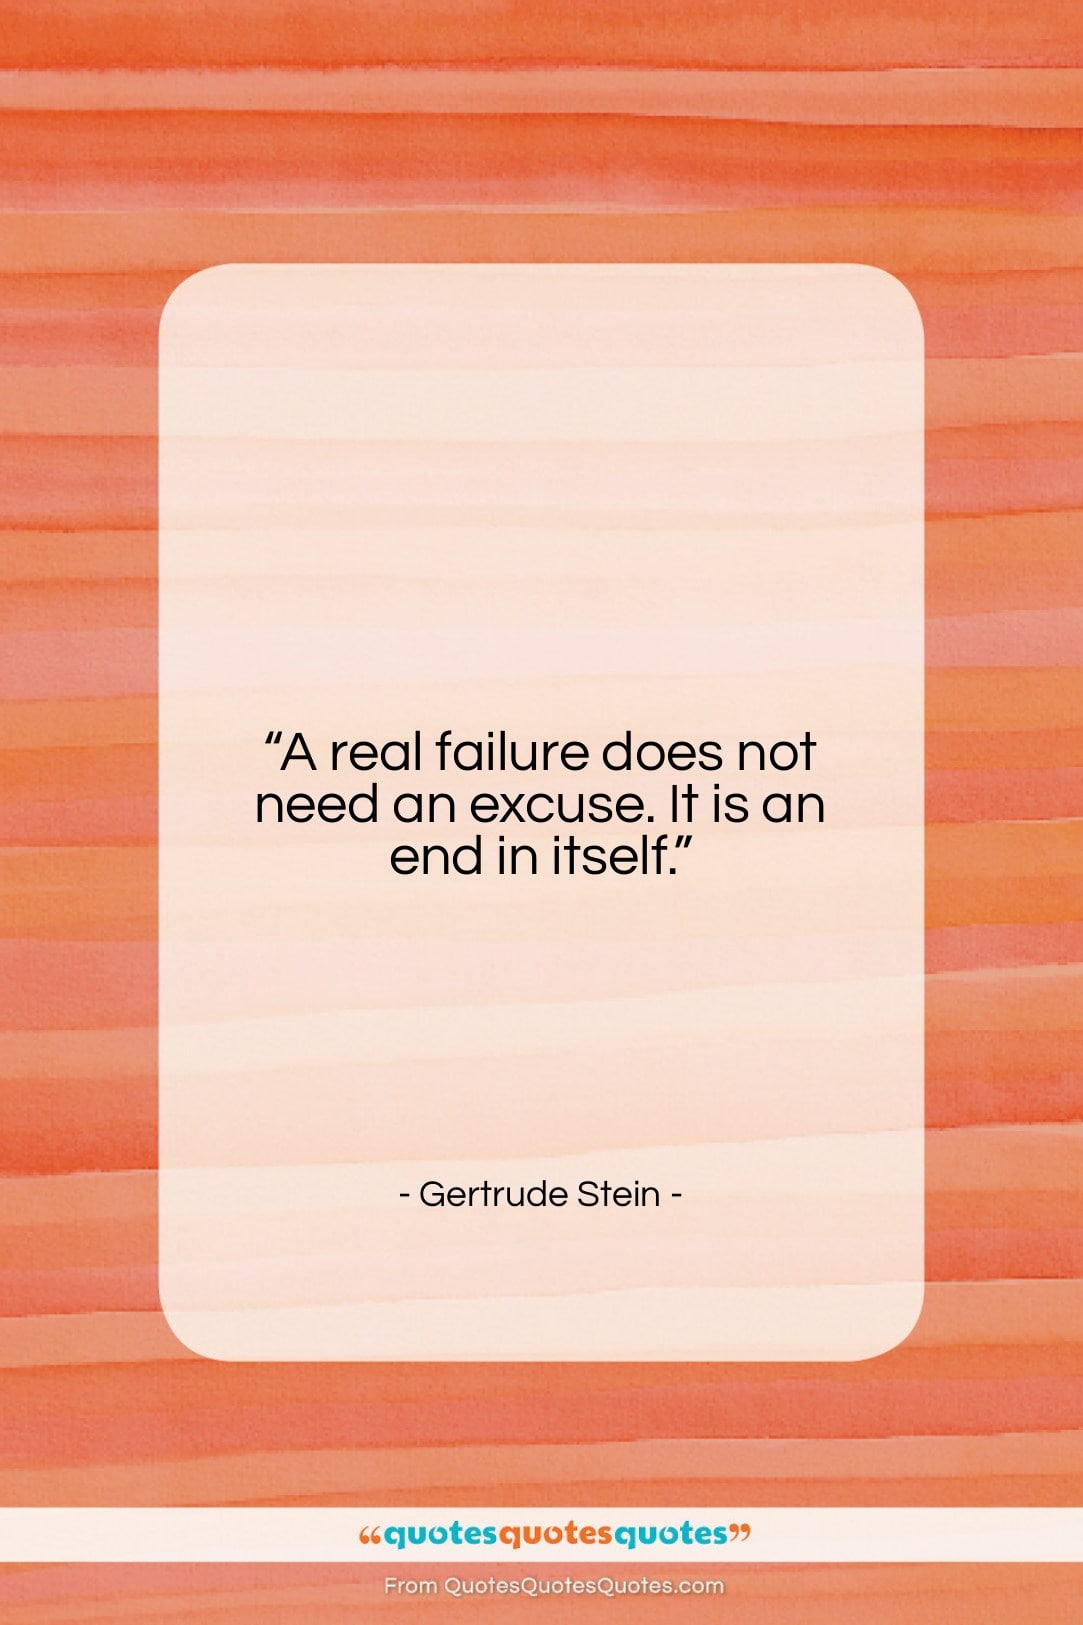 """Gertrude Stein quote: """"A real failure does not need an…""""- at QuotesQuotesQuotes.com"""